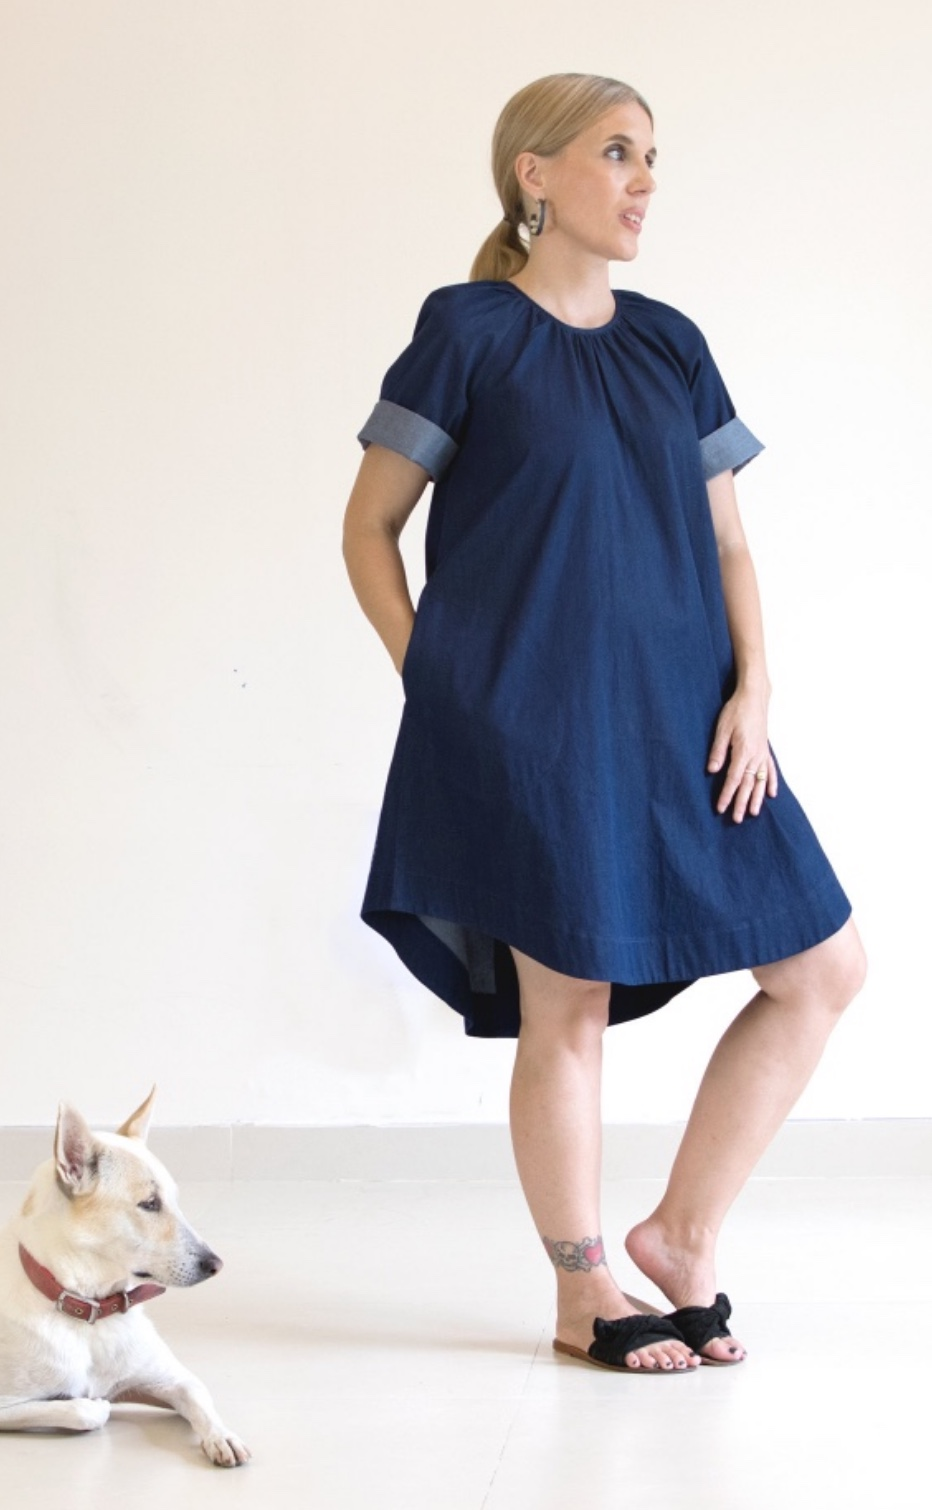 Calyx Smock sewing pattern from Pattern Fantastique